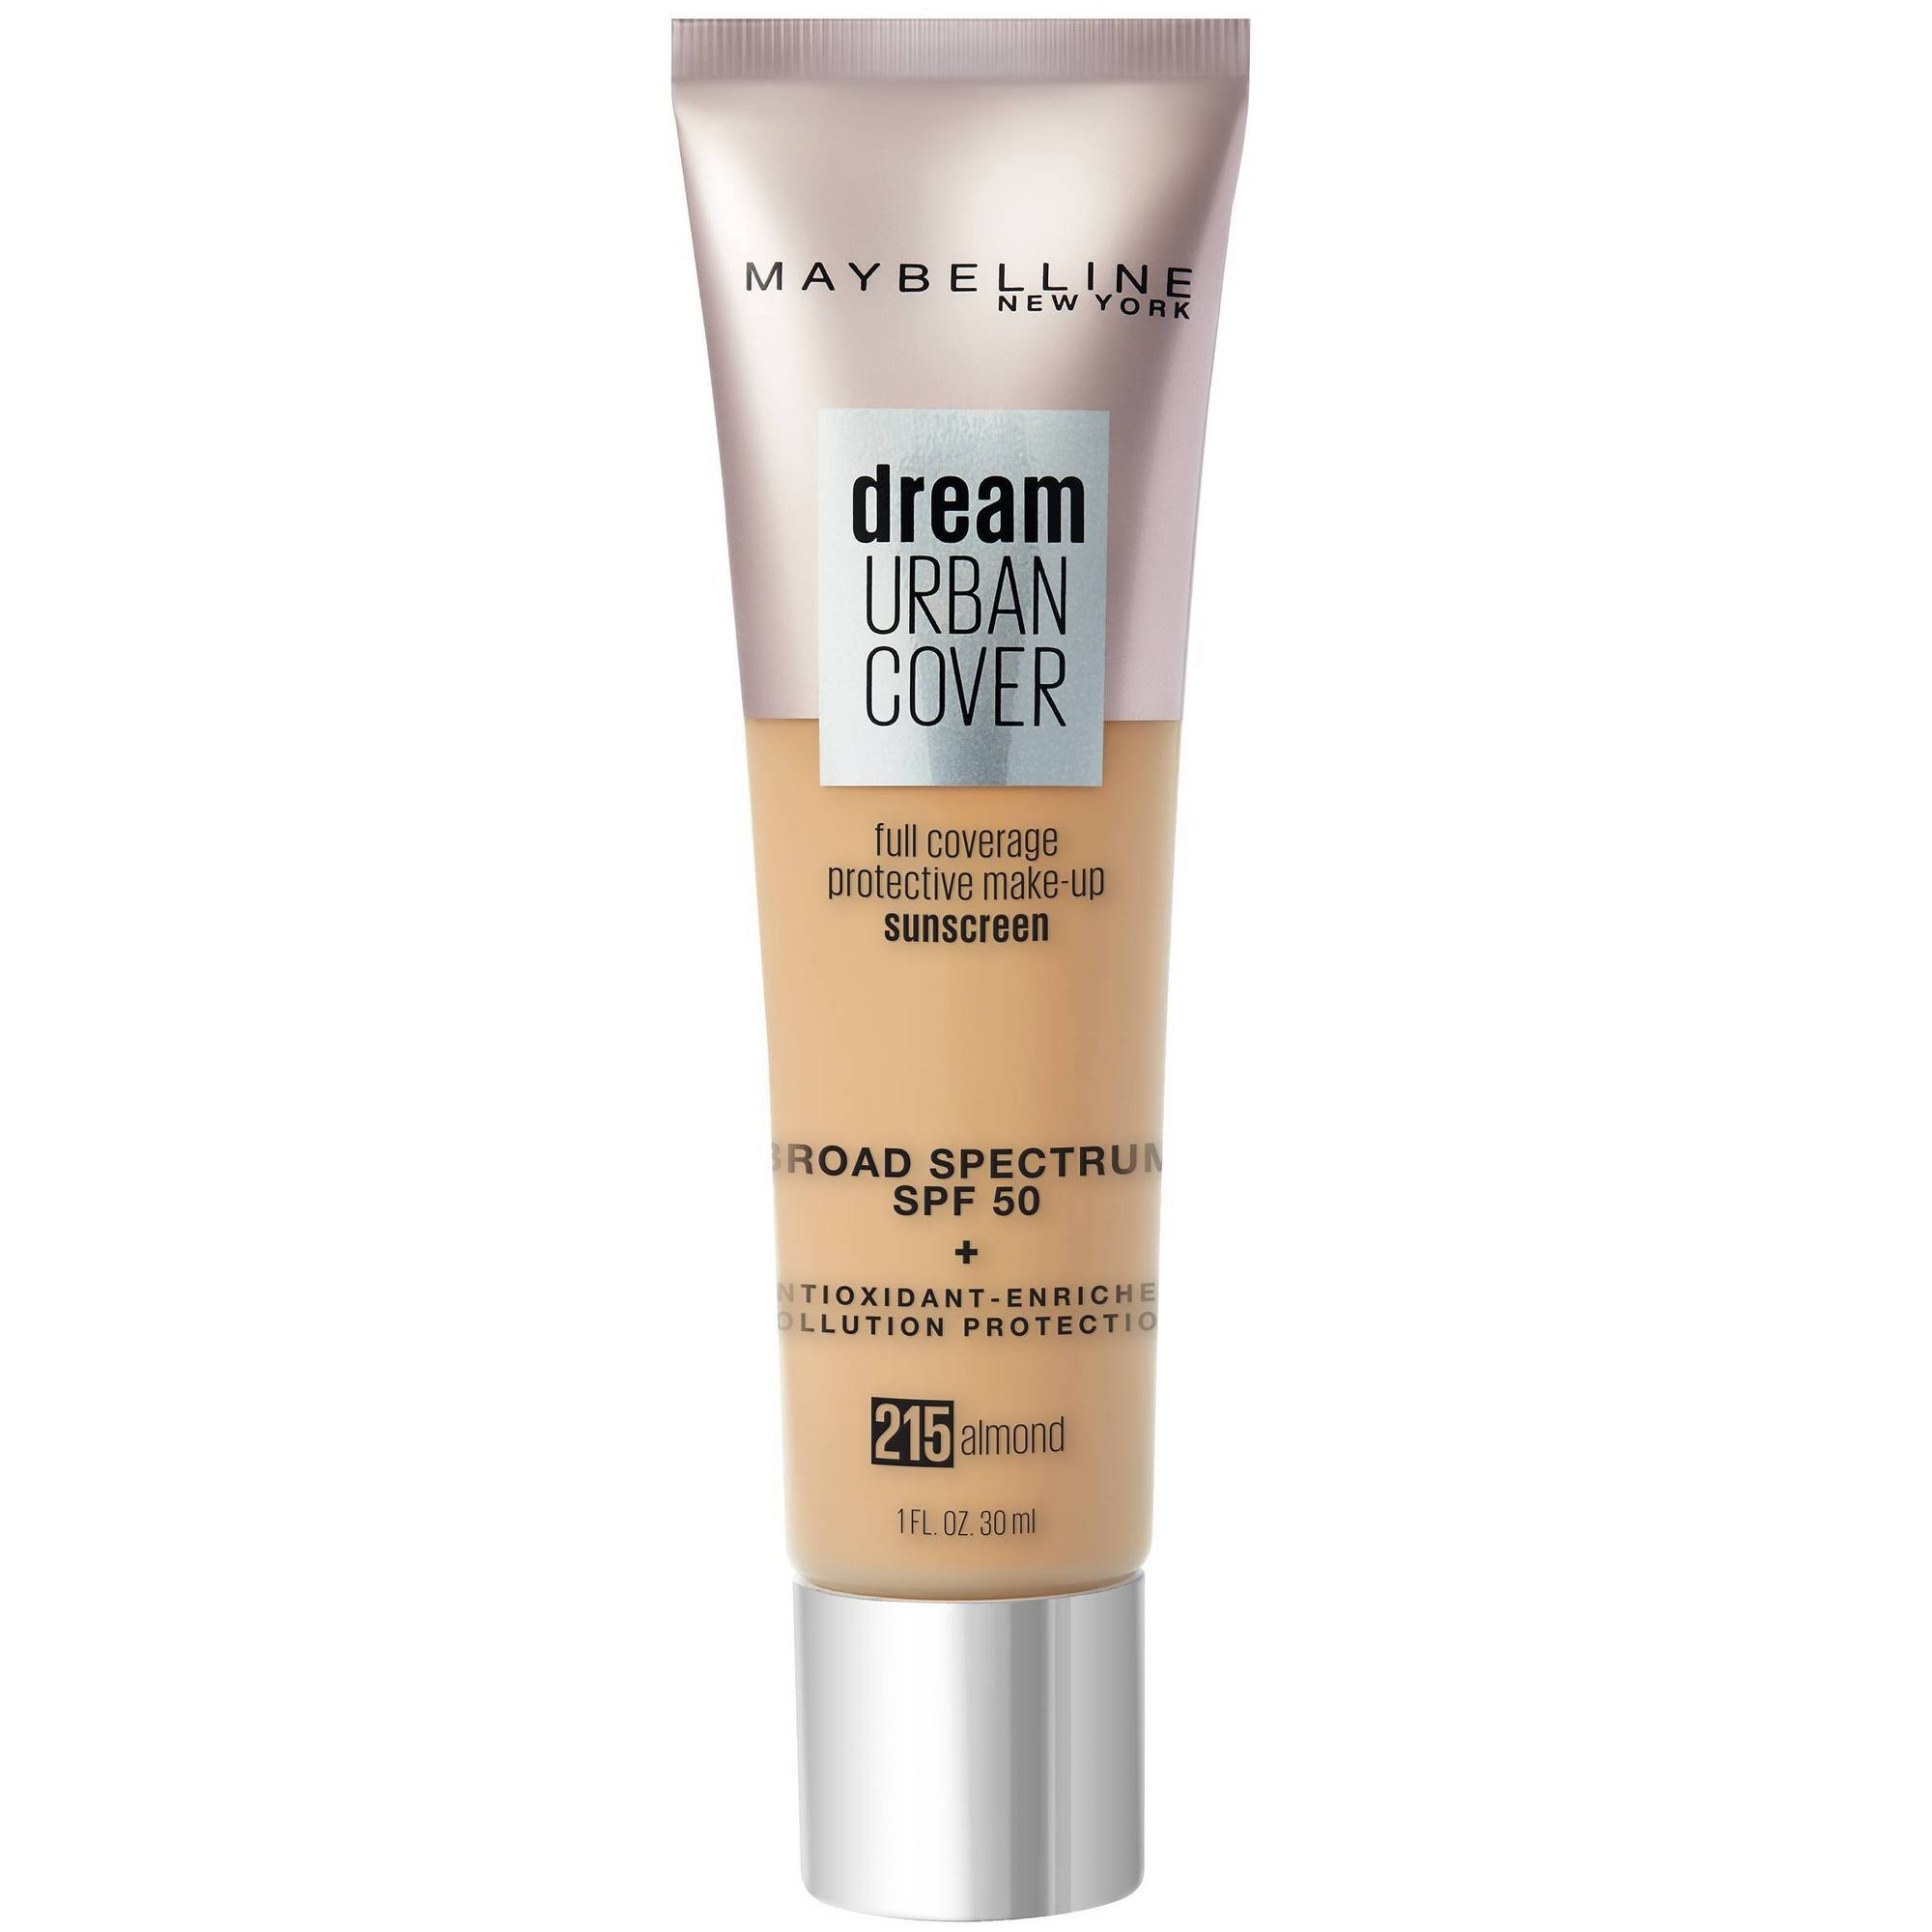 Maybelline Dream Urban Cover Flawless Coverage Foundation - SPF 50, Almond, 1oz